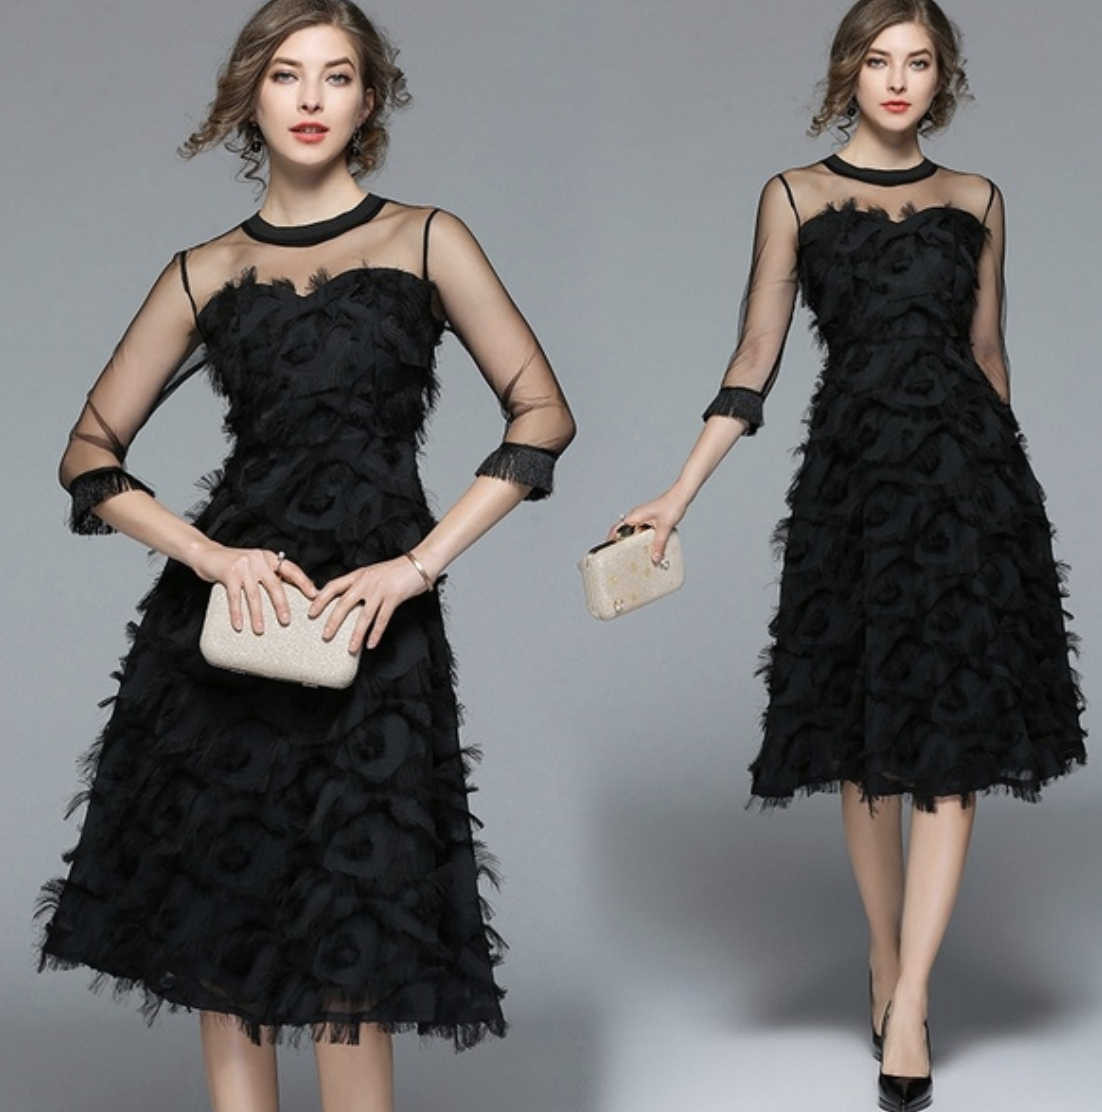 French A-line dress